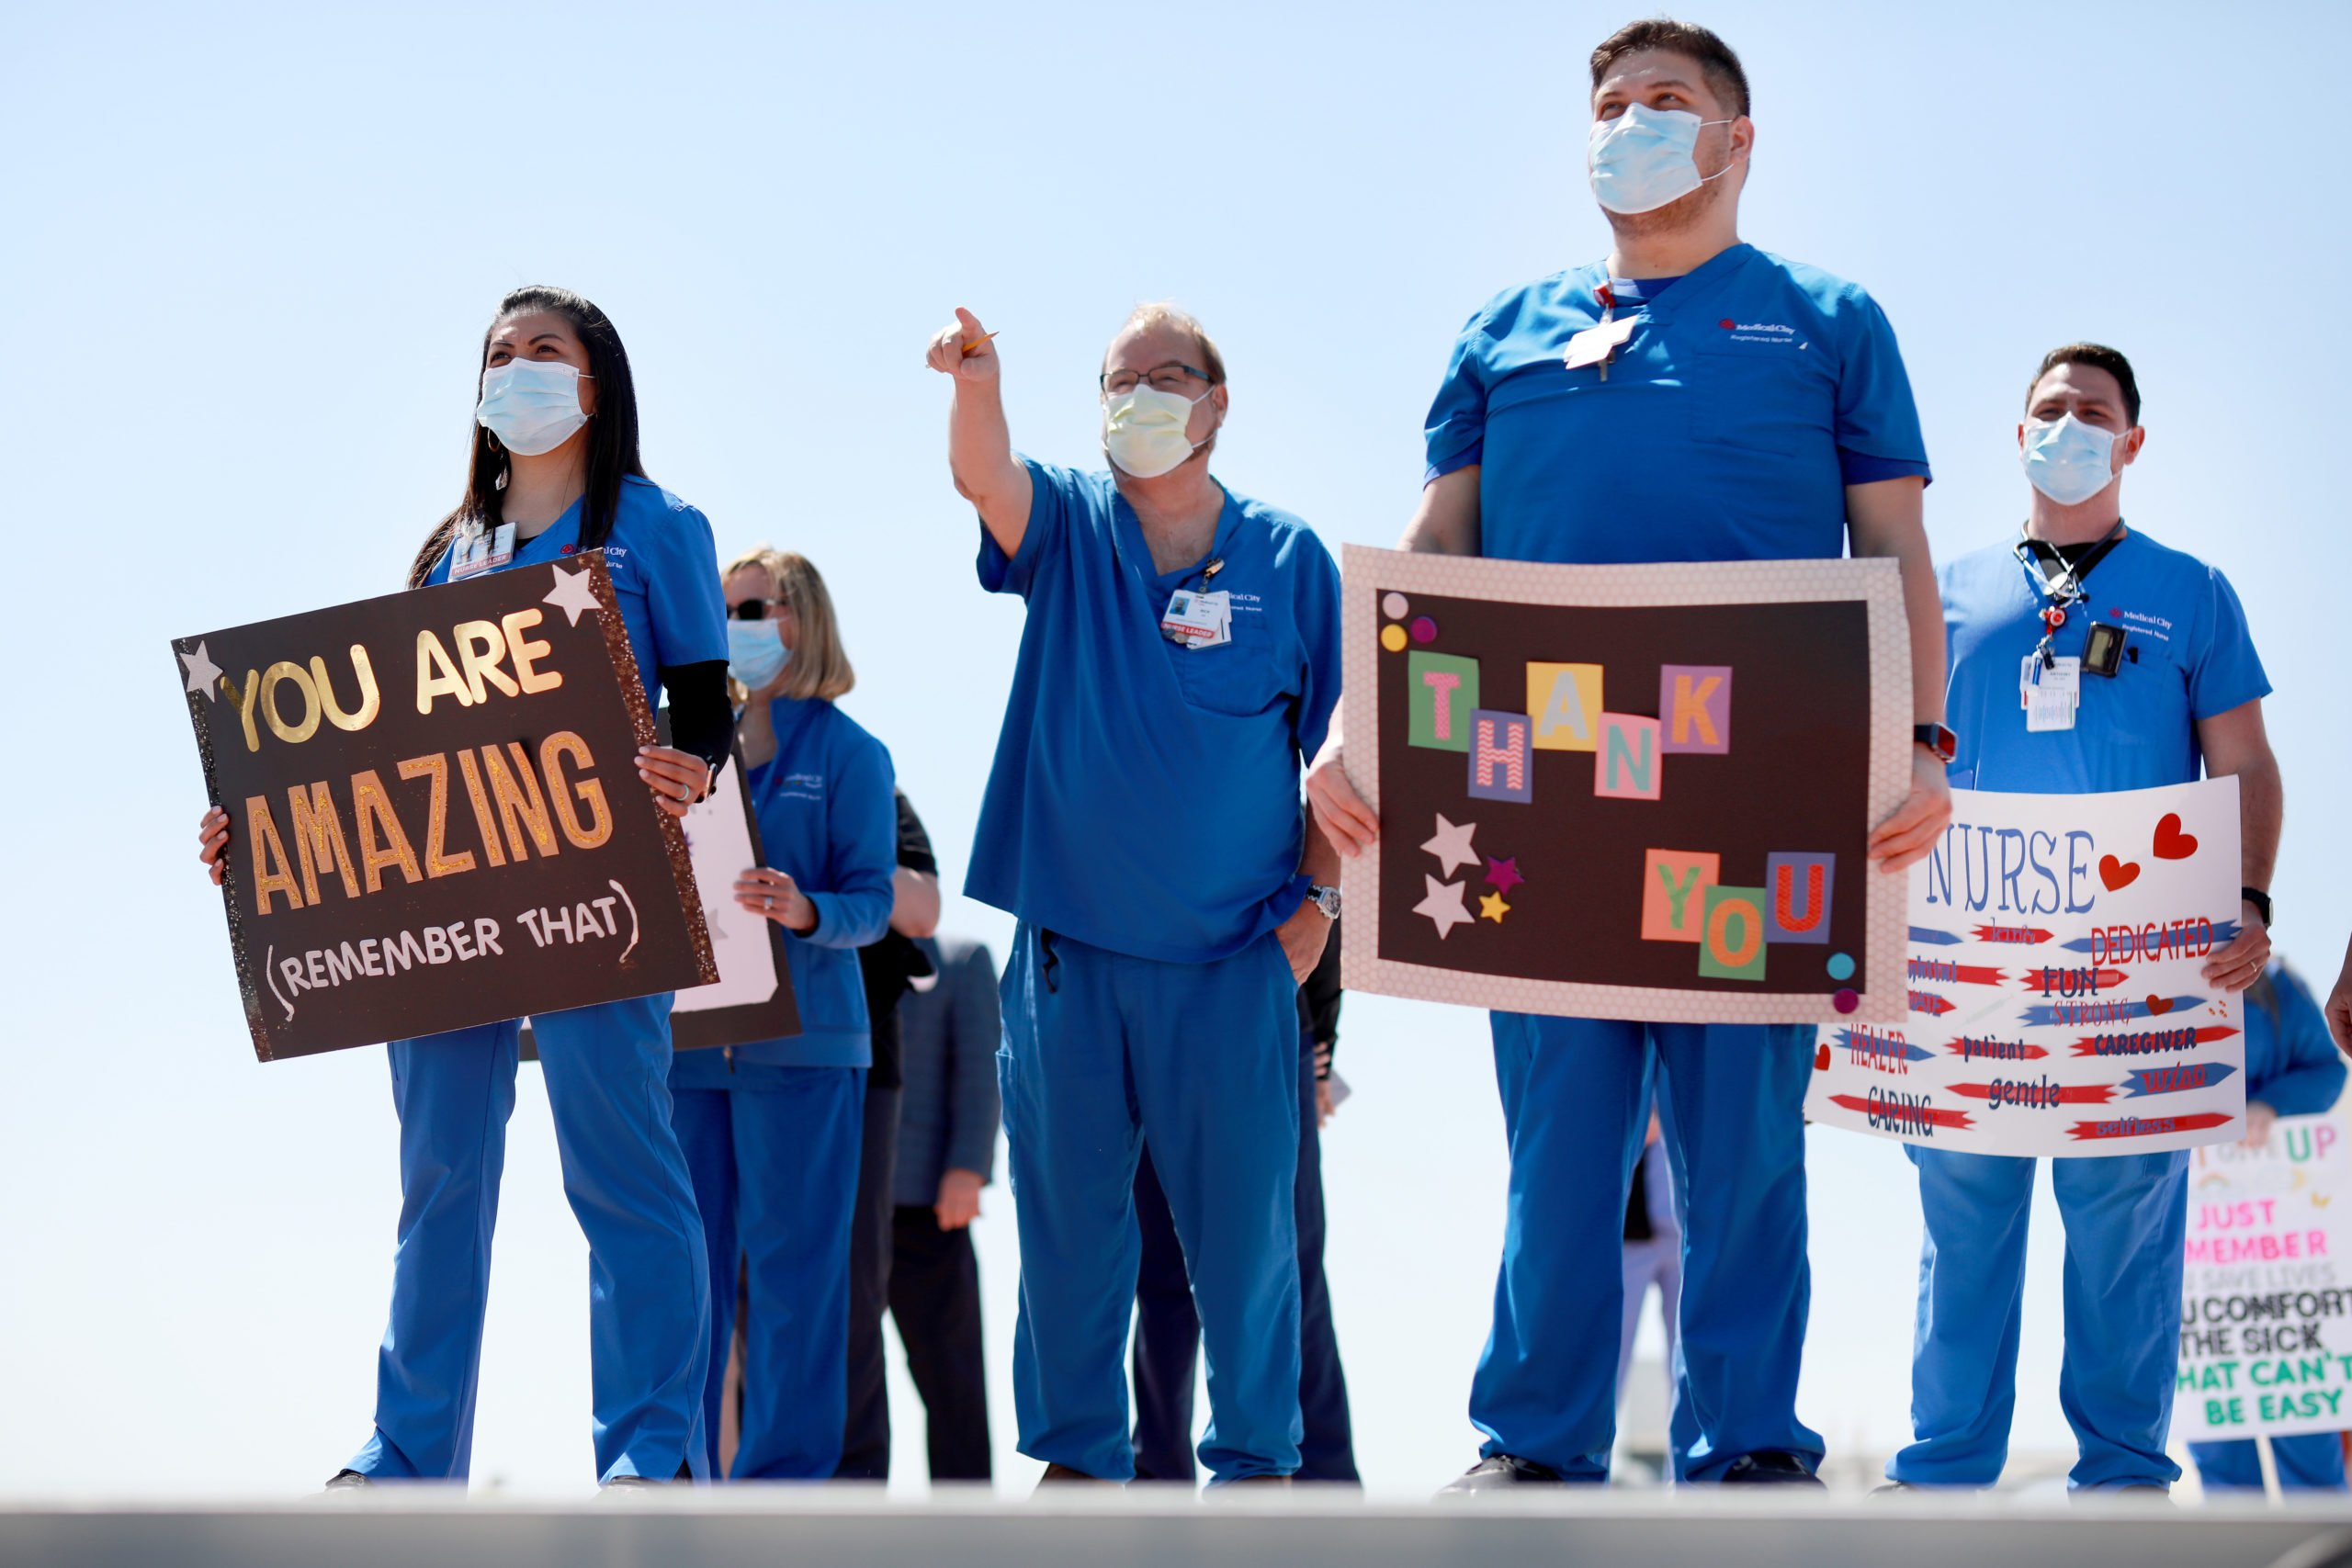 Hospital staff, including nurses, doctors and administrators, look on in anticipation of the Navy Blue Angels flyover above Medical City Dallas on May 6. (Tom Pennington/Getty Images)